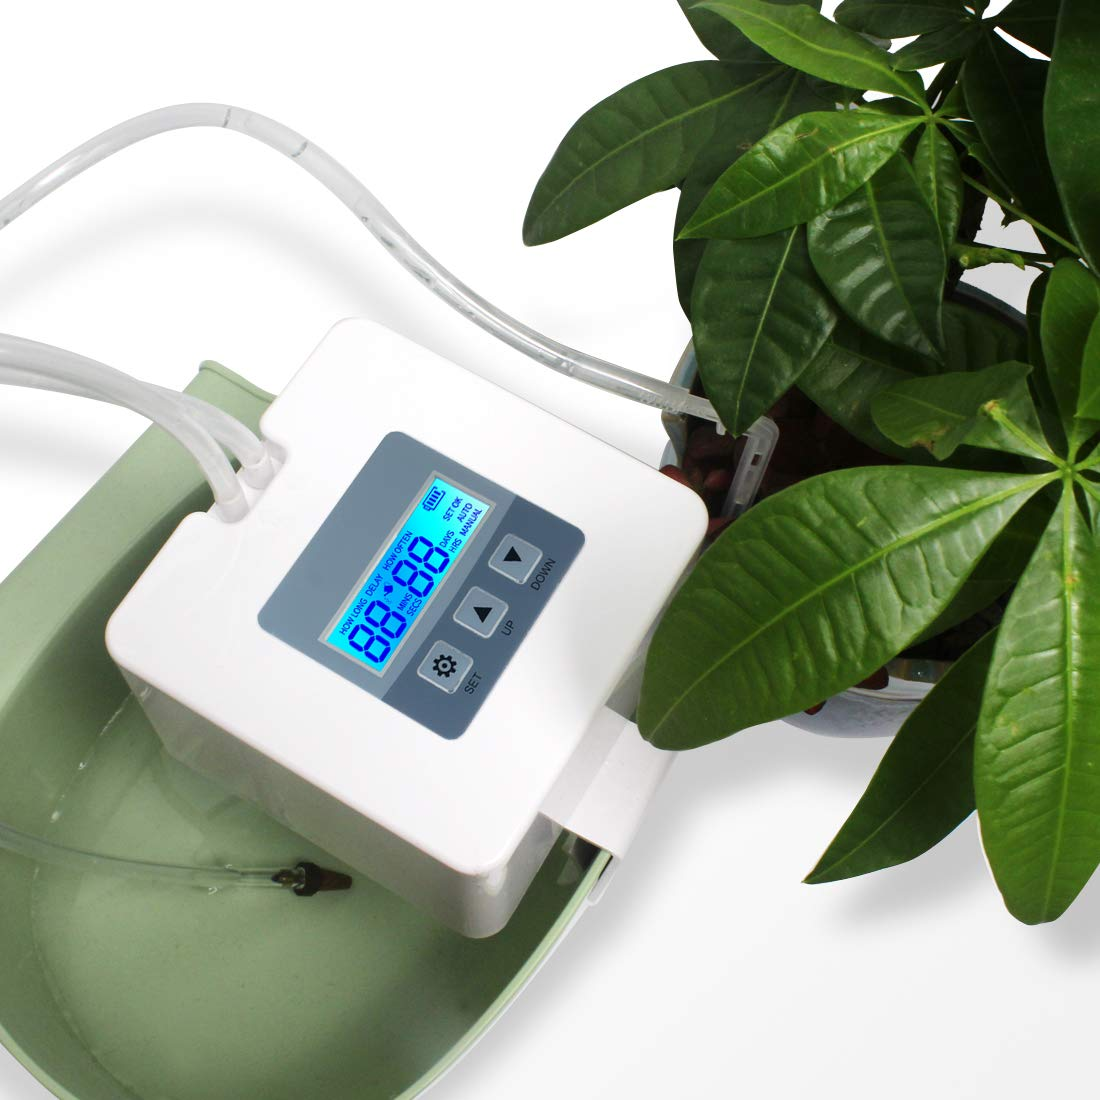 Diy Micro Automatic Drip Irrigation Kit Houseplants Wiring An Solenoid Valve Youtube Self Watering System With 30 Day Digital Programmable Water Timer 5v Usb Power Operation